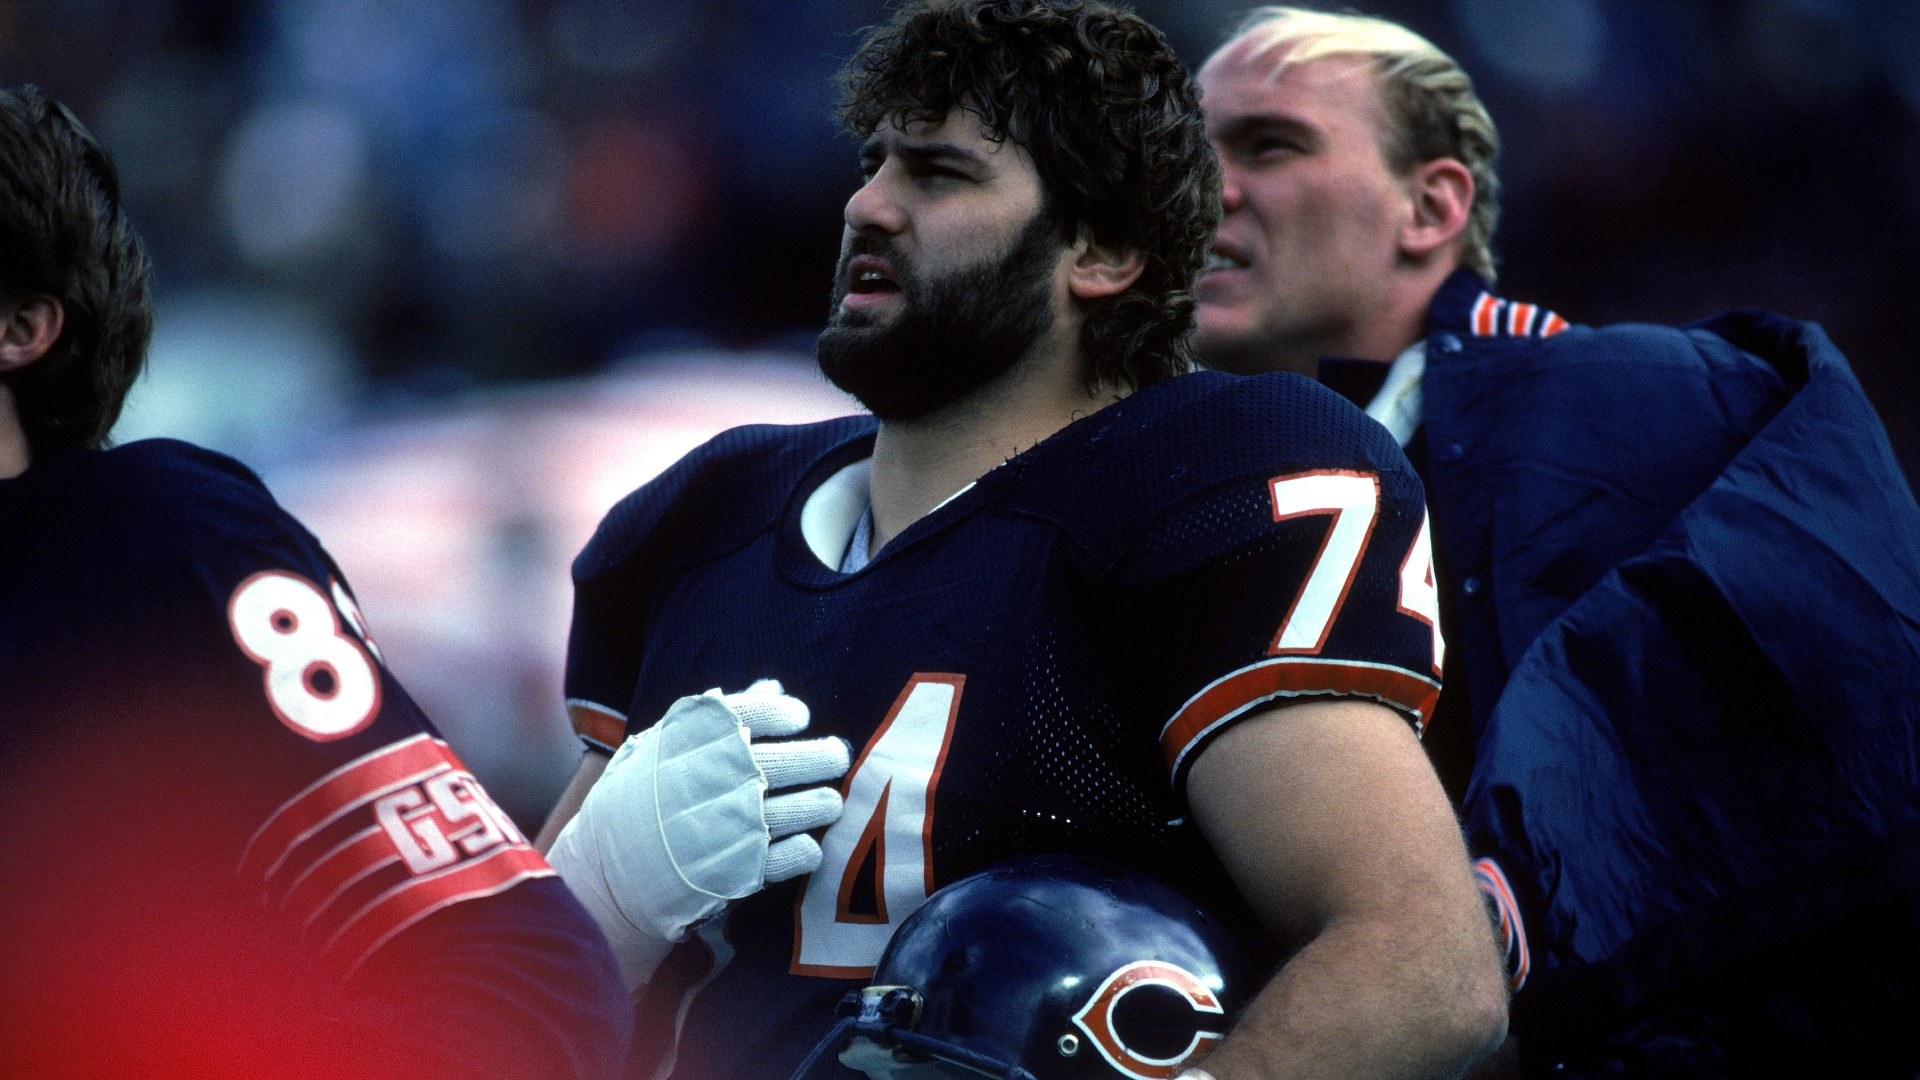 For a young sportswriter years ago, Bears legend Jimbo Covert was the subject of a Hall of Fame article.